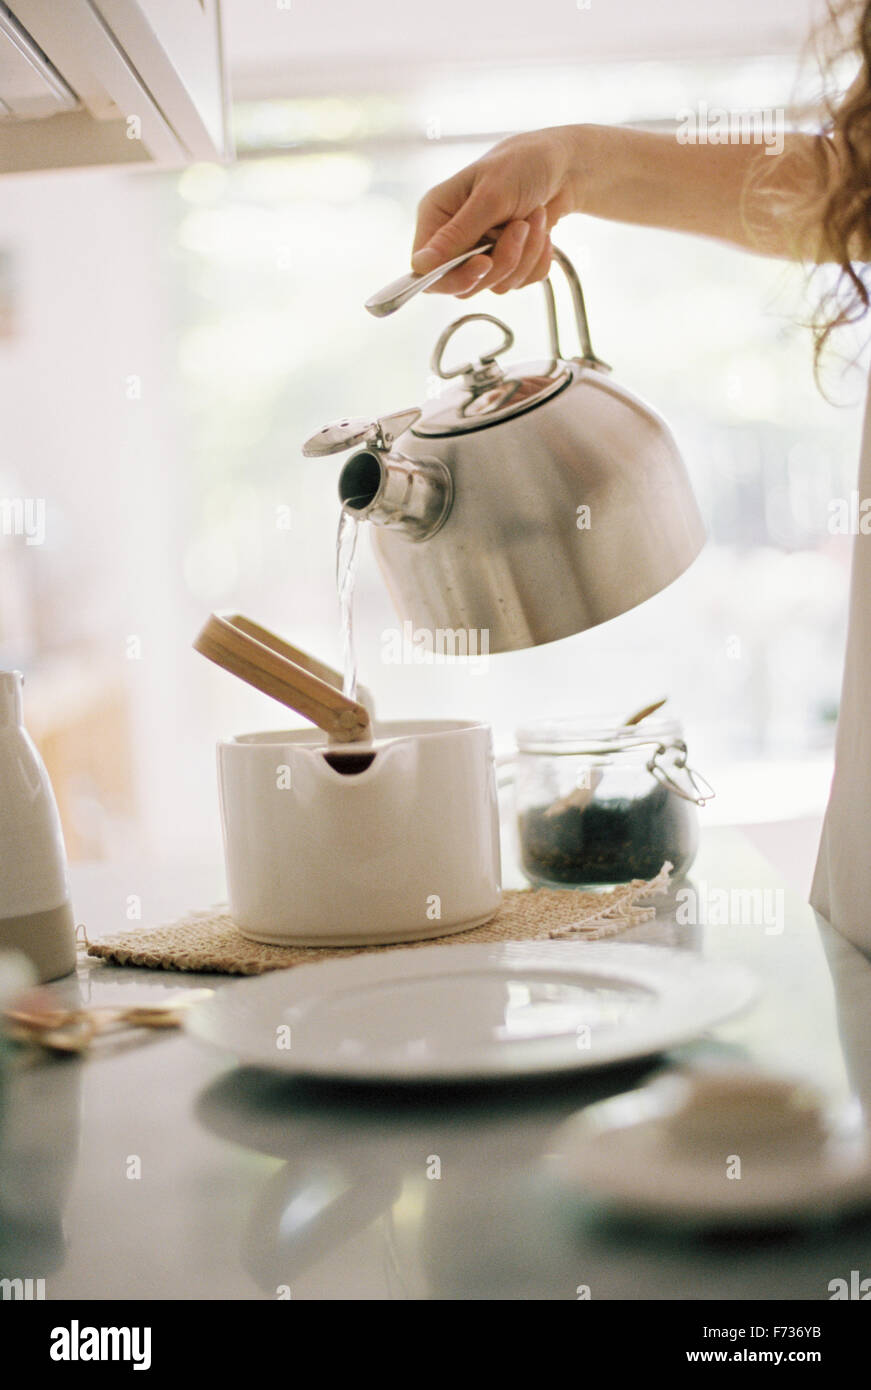 Woman standing in a kitchen pouring hot water from a kettle into a tea pot. - Stock Image